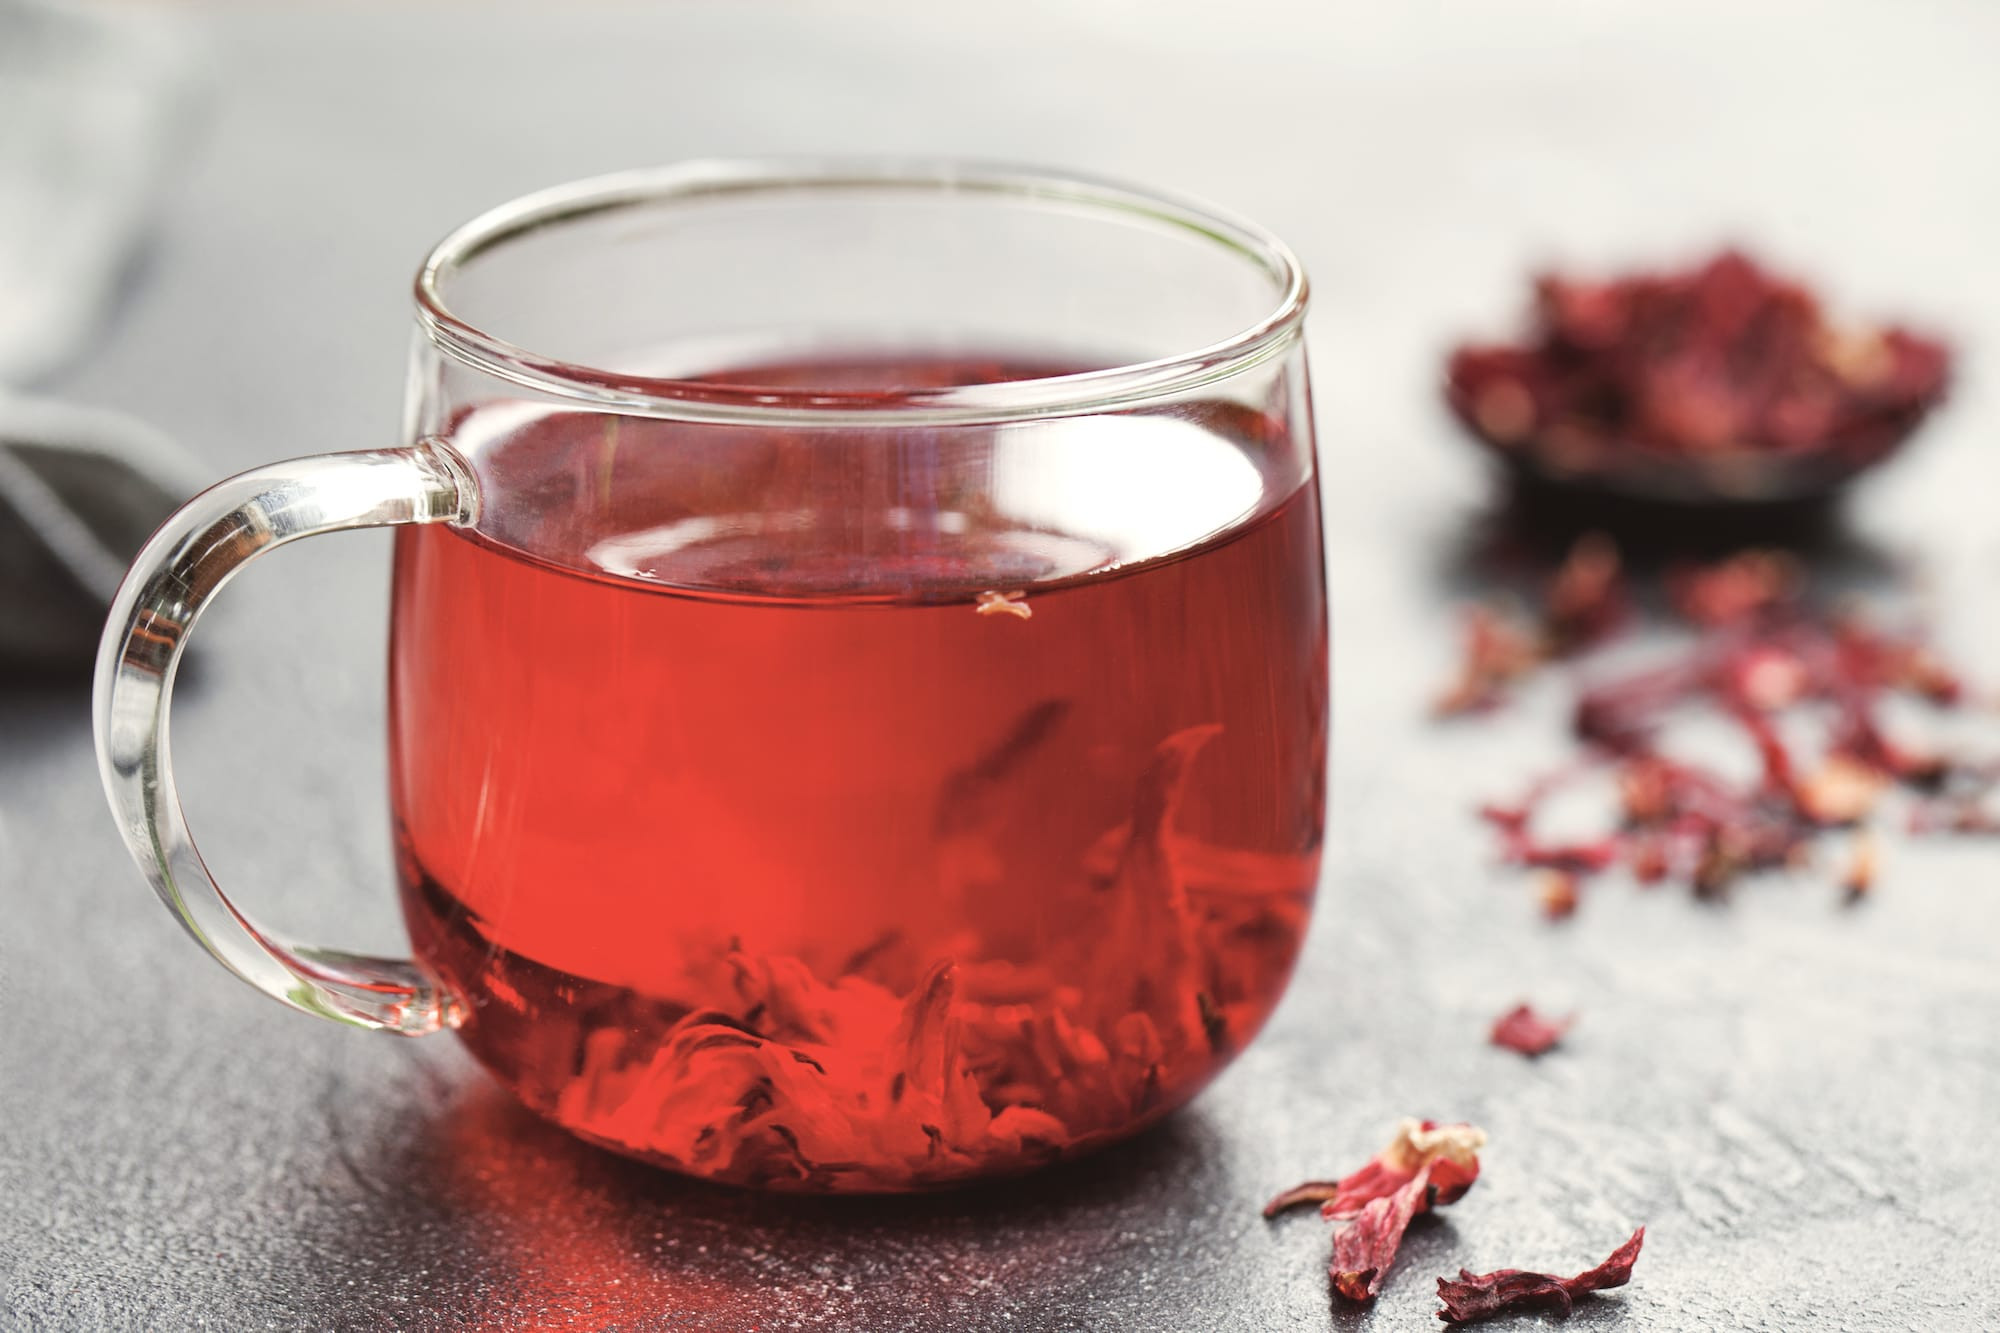 A cup of hibiscus tea, the perfect thirst quencher for Florida's temperatures